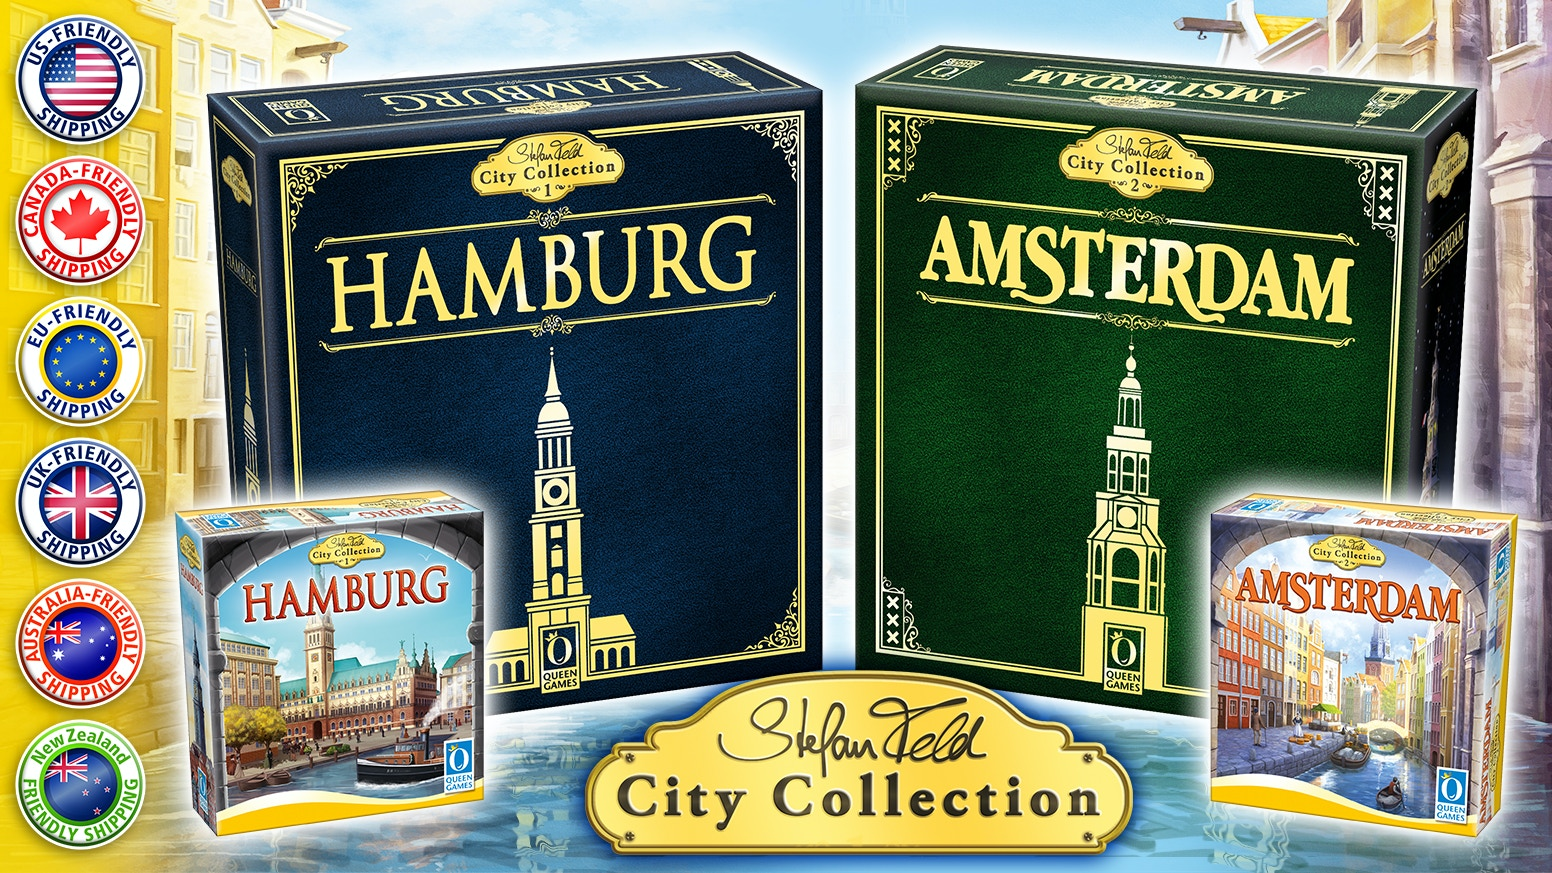 Hamburg & Amsterdam kick off the Stefan Feld City Collection which will expand over many years to come!